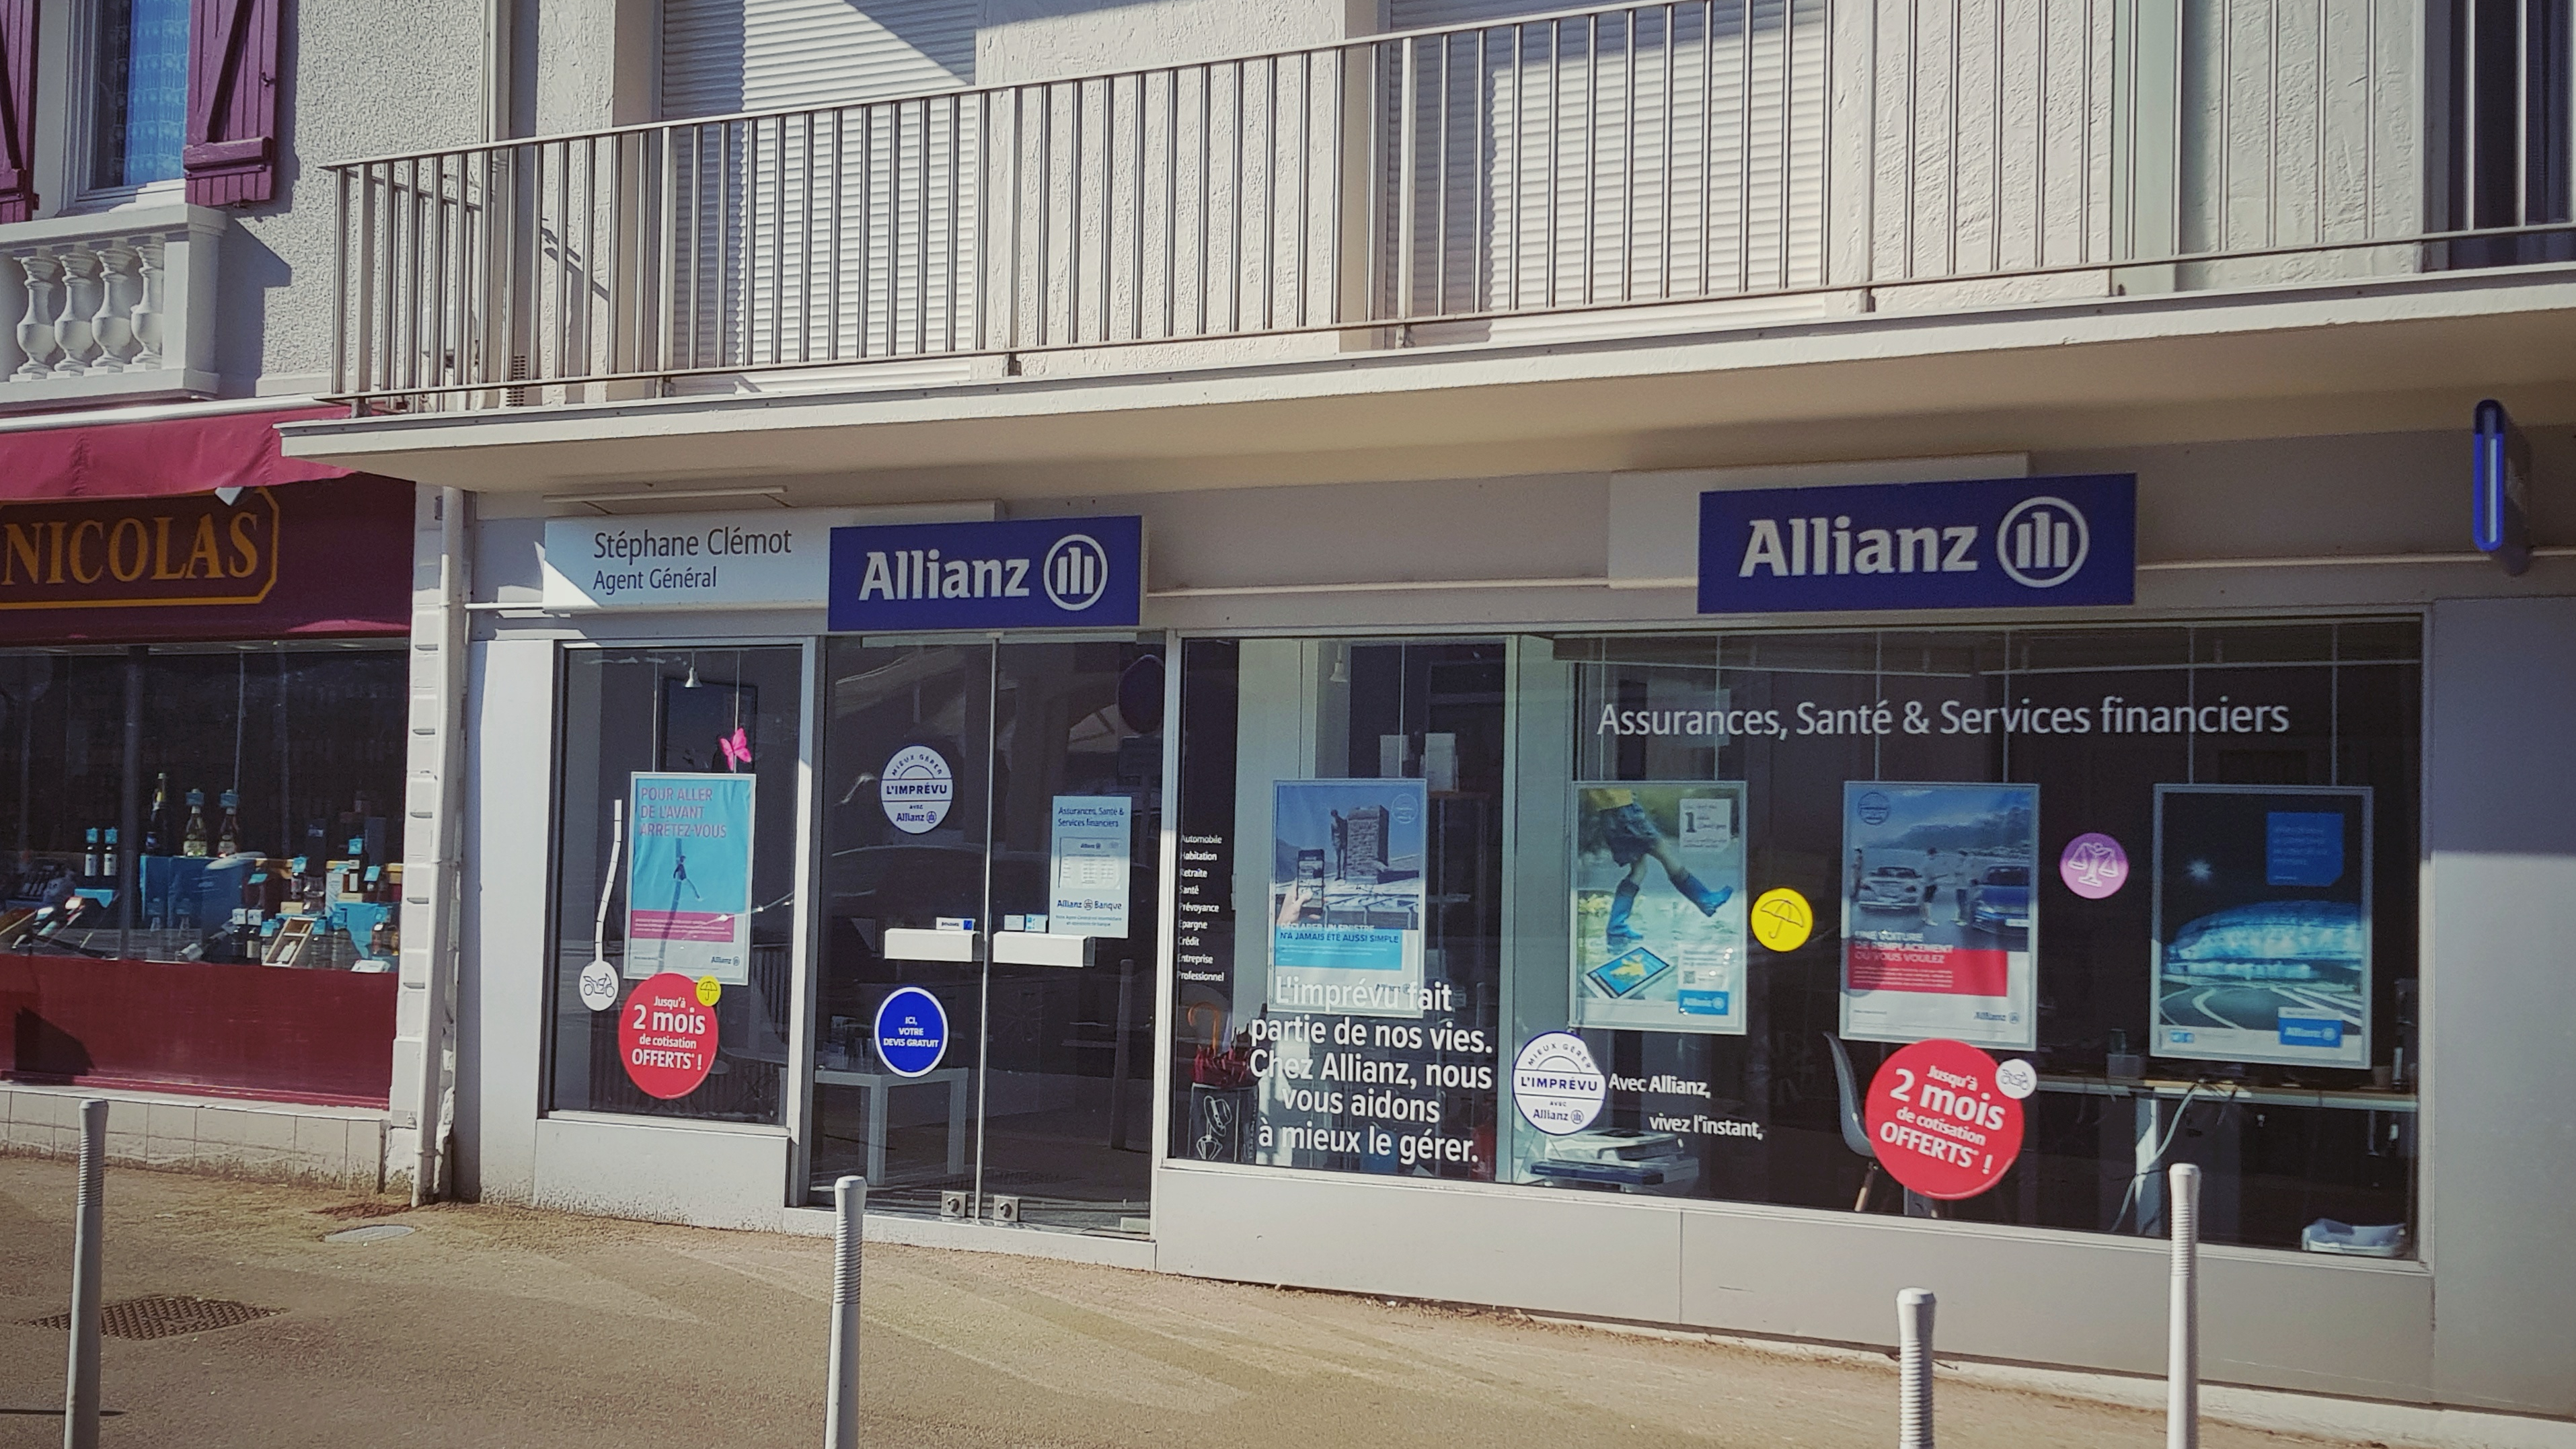 Allianz La baule - Stephane CLEMOT